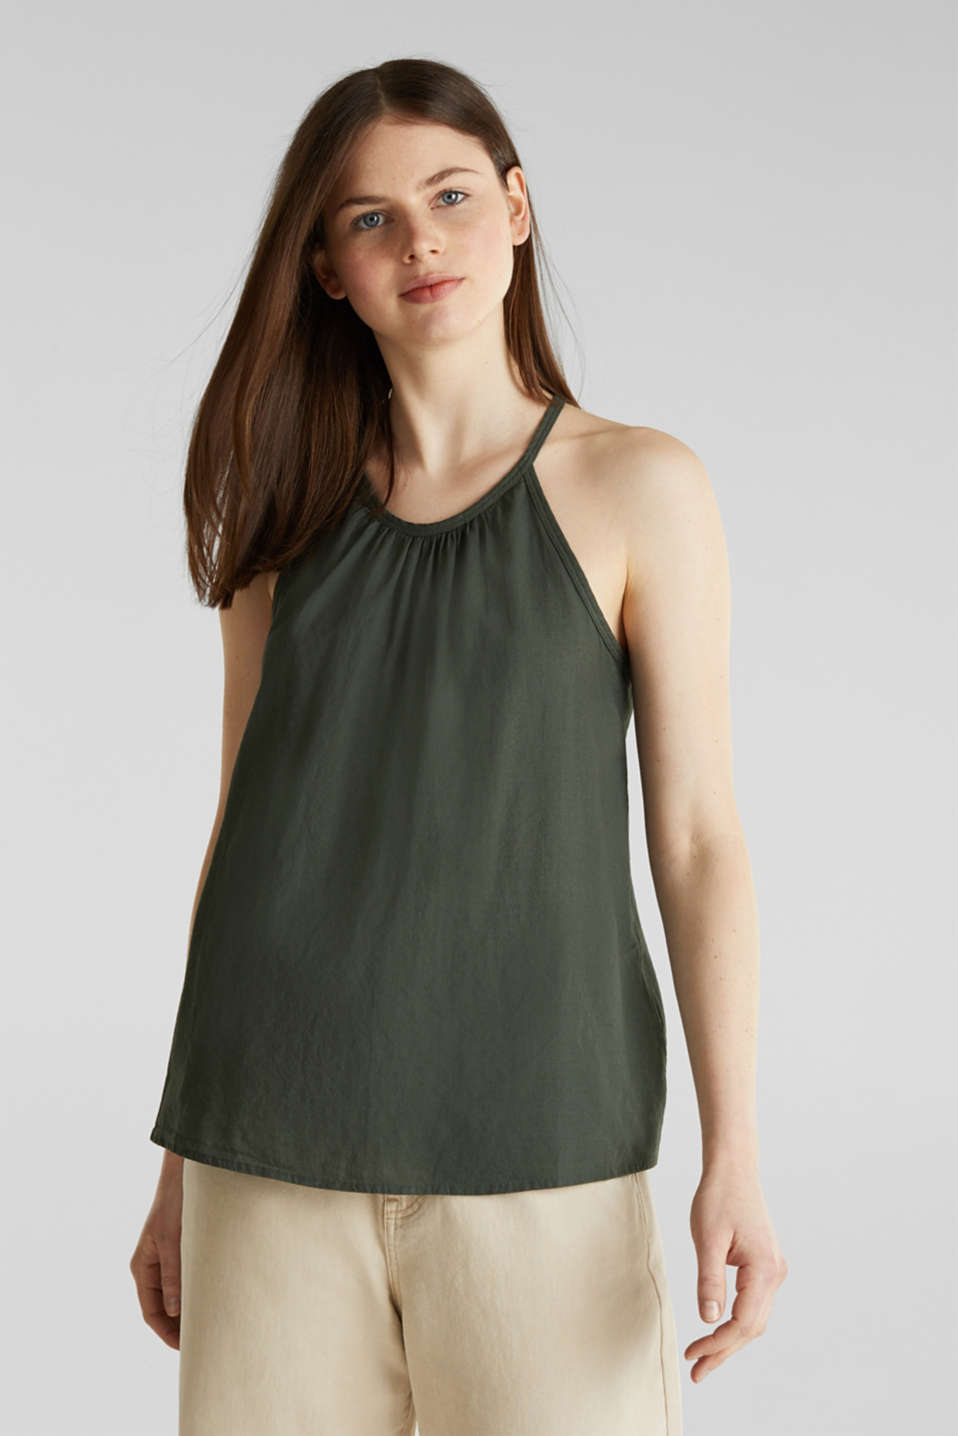 edc - Blouse top, organic cotton